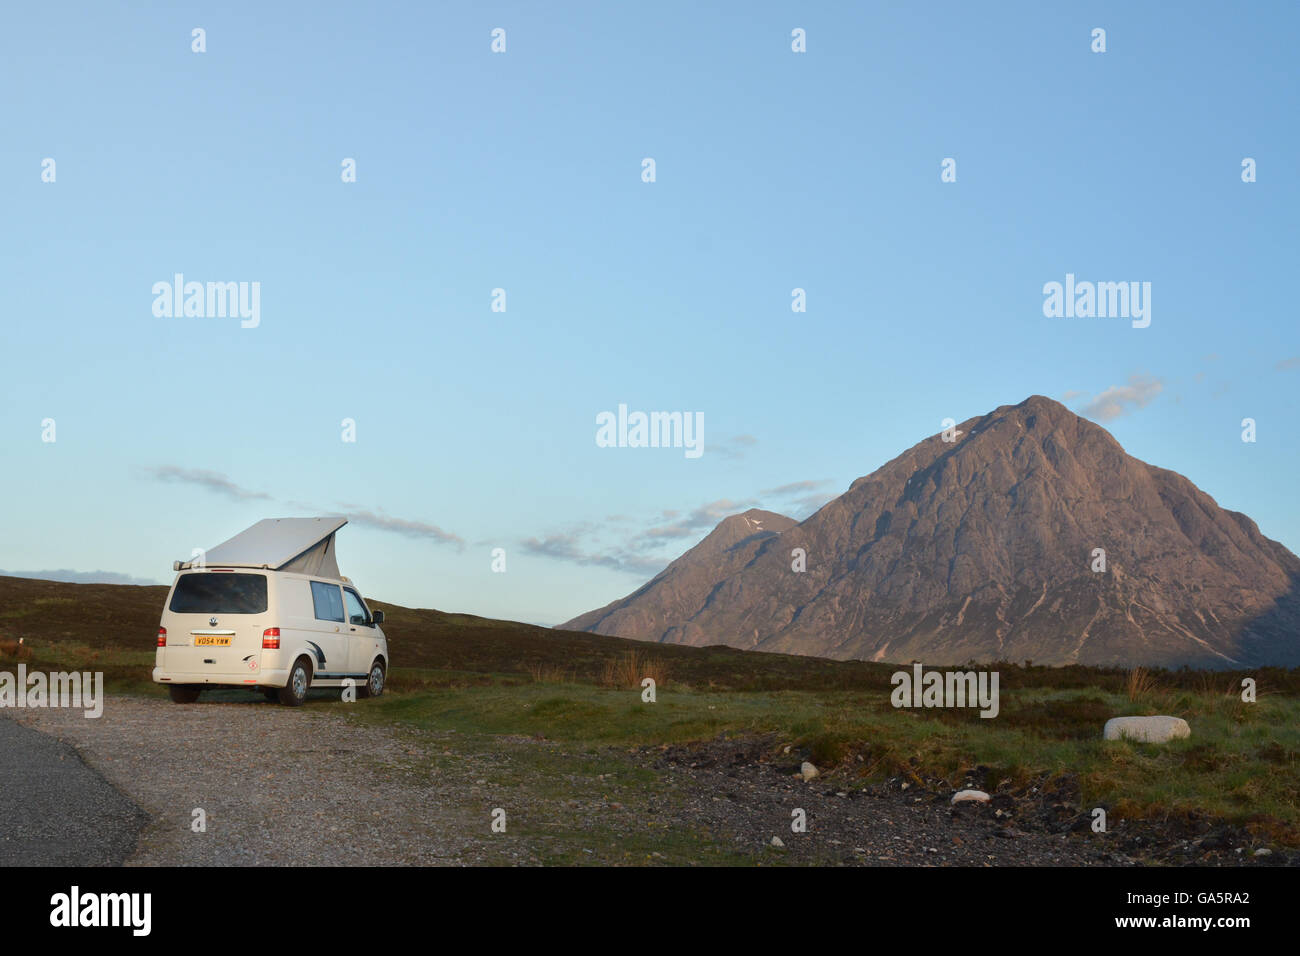 wild camping - campervan at daybreak in the Scottish Highlands parked close by Buachaille Etive Mor, Glen Coe, Scotland, - Stock Image